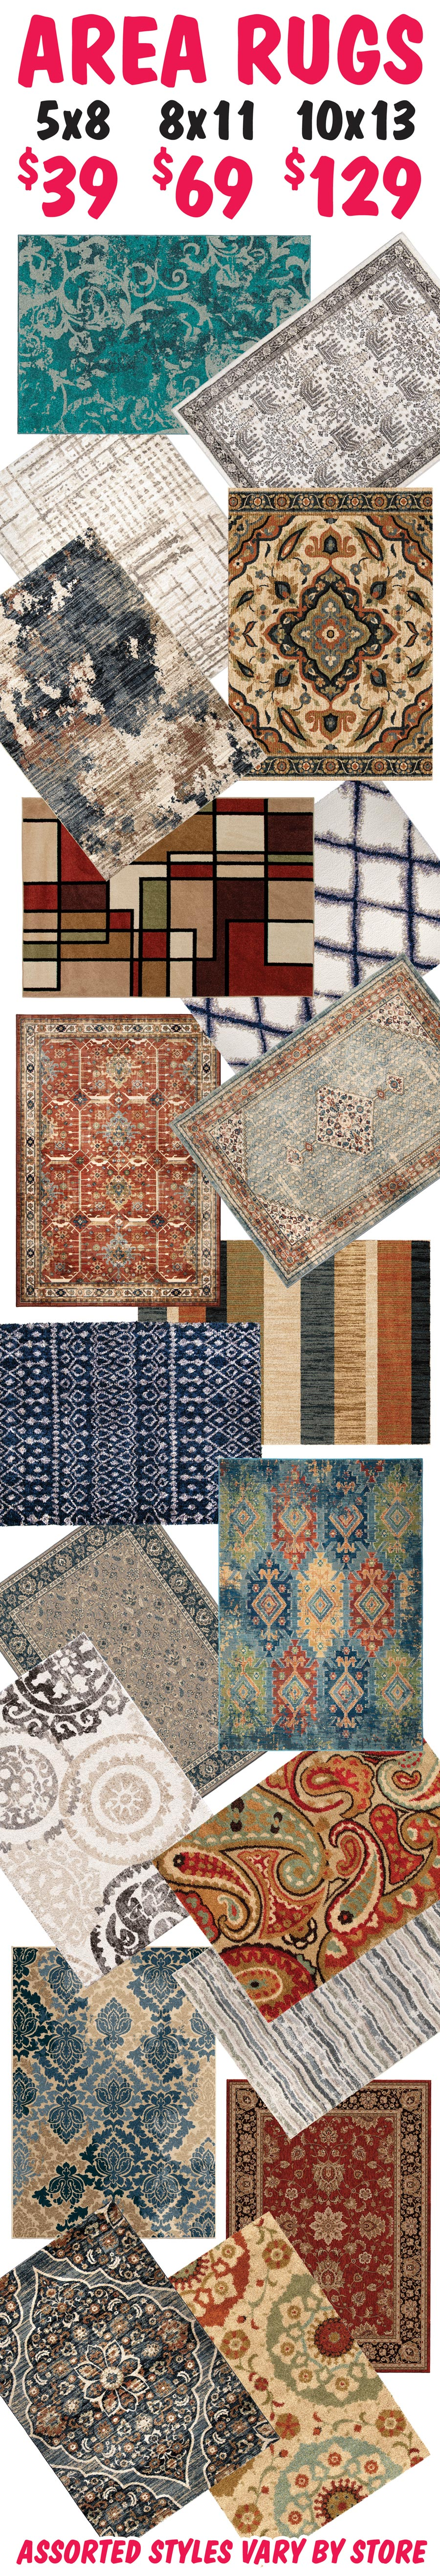 Assorted Area Rugs 5 by 8s starting at $38